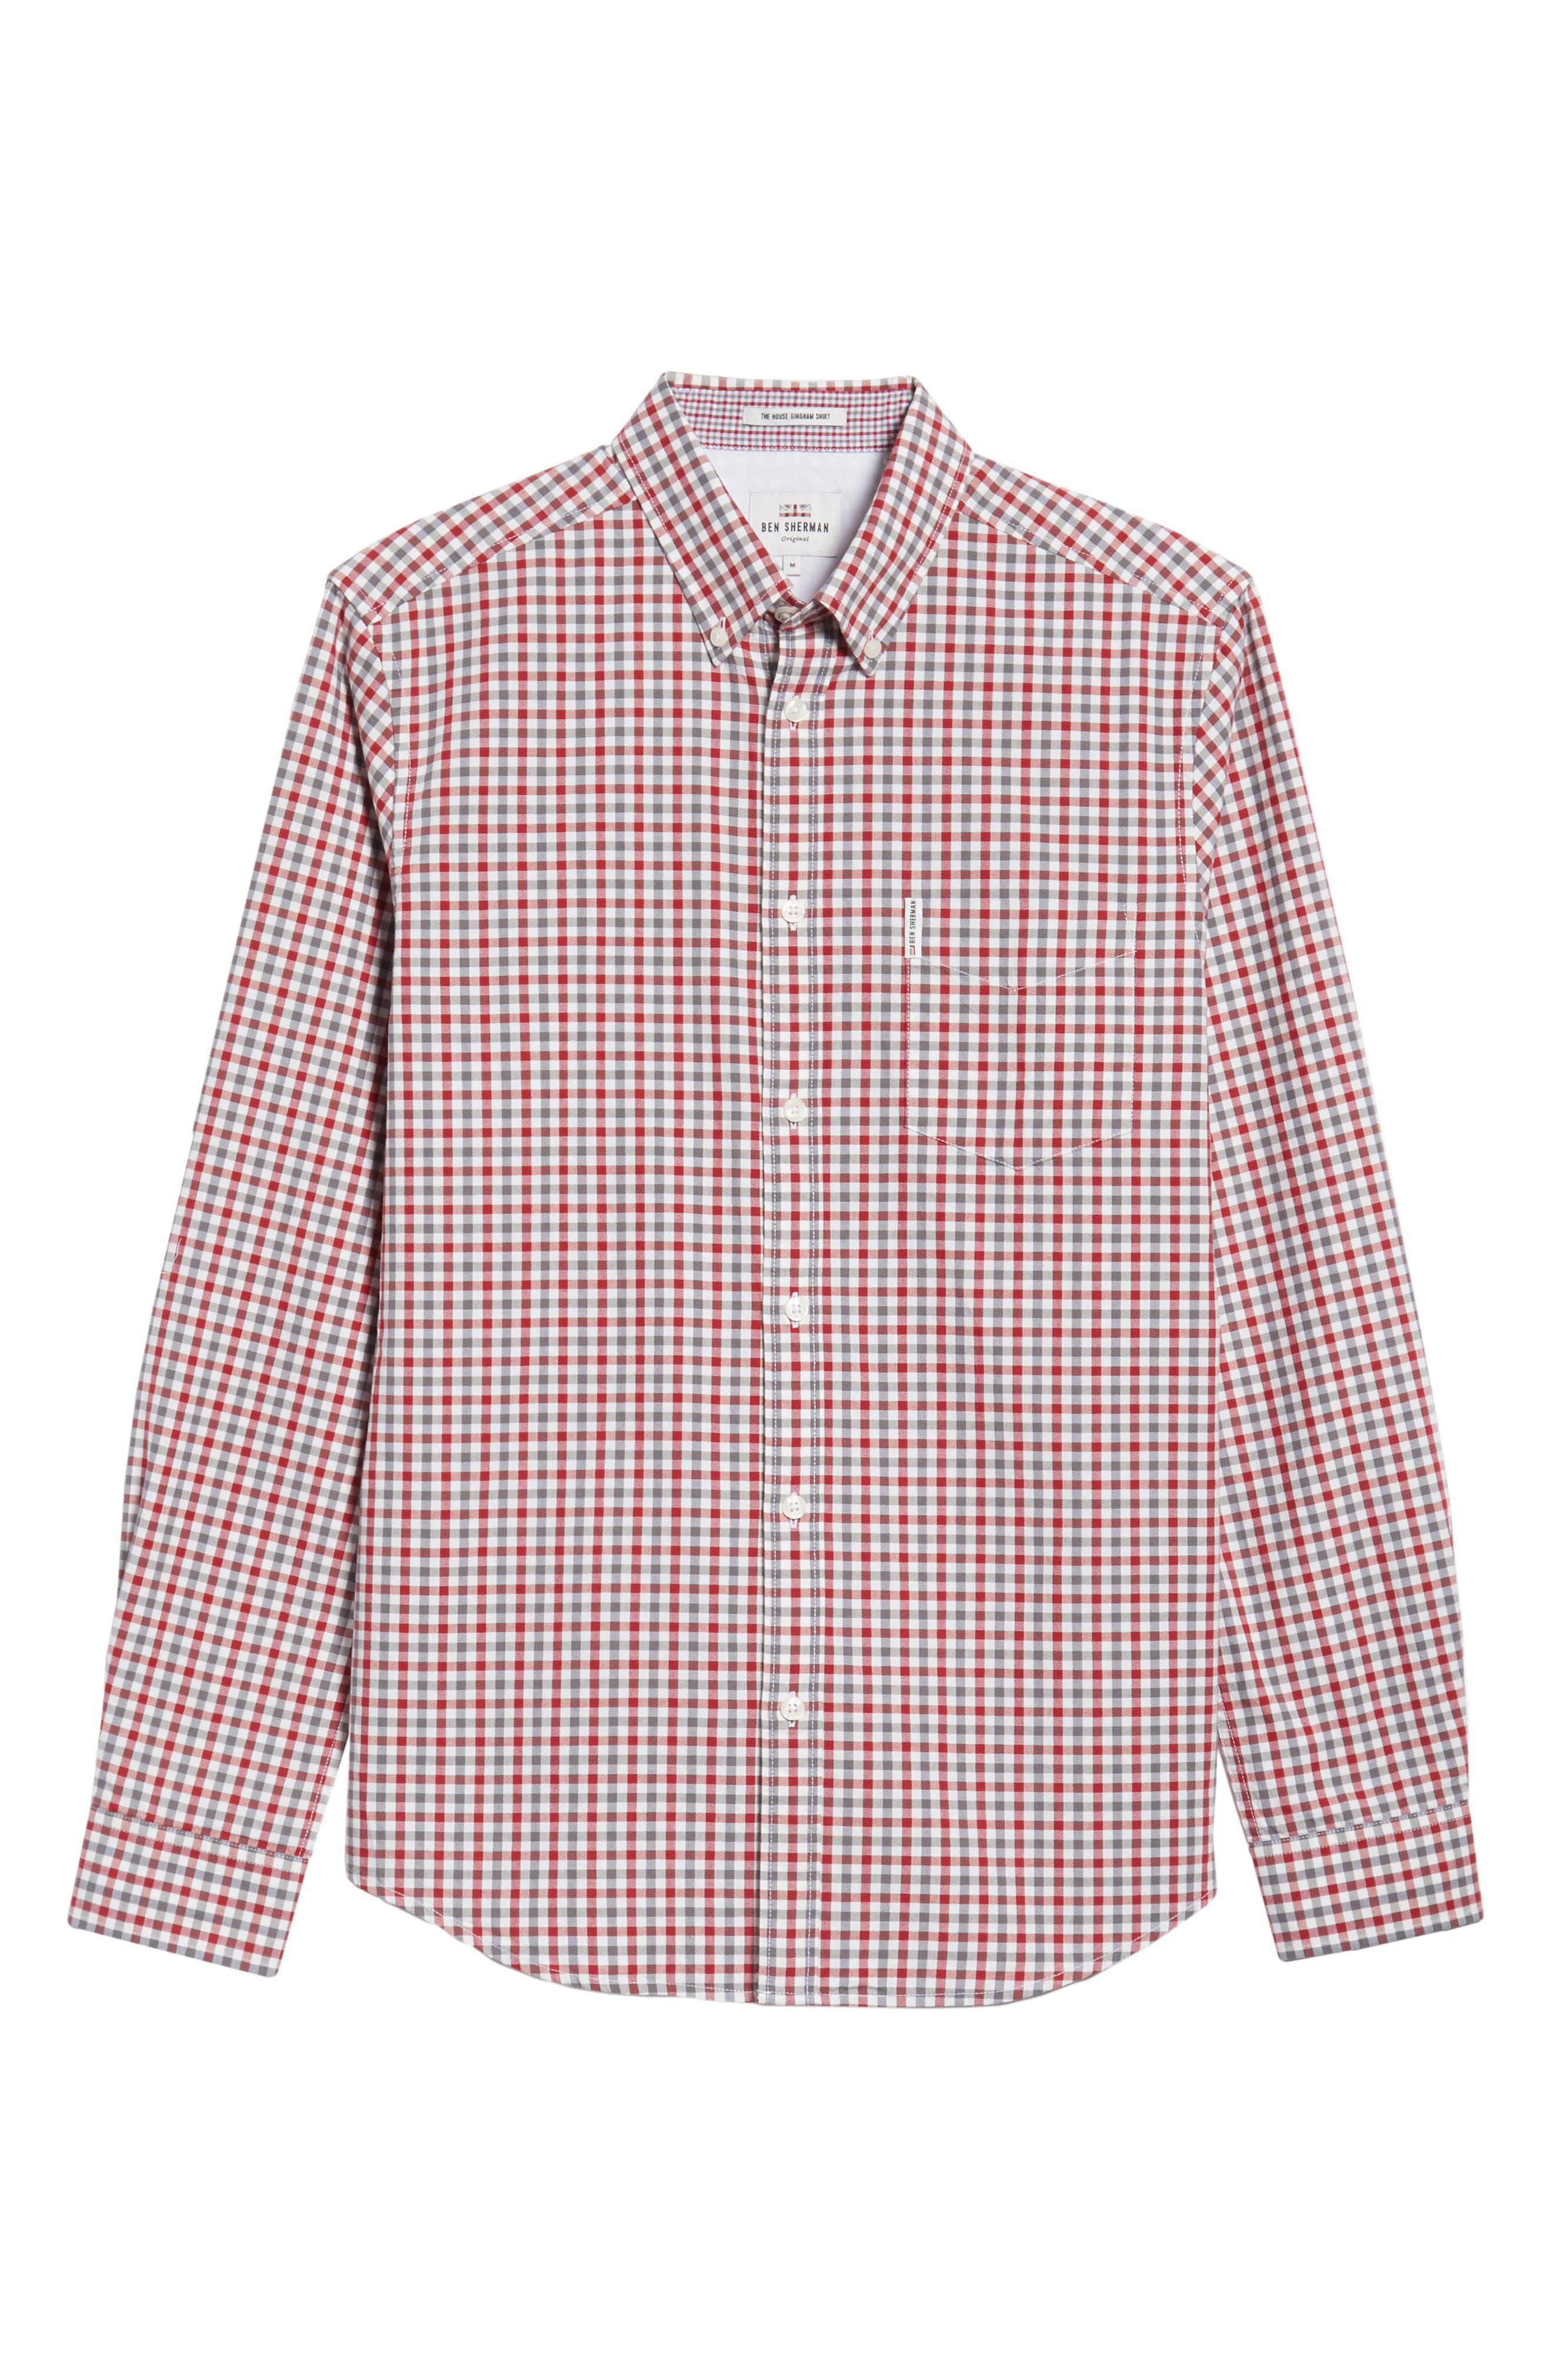 Mod Fit Gingham Woven Shirt,                             Alternate thumbnail 6, color,                             OFF WHITE